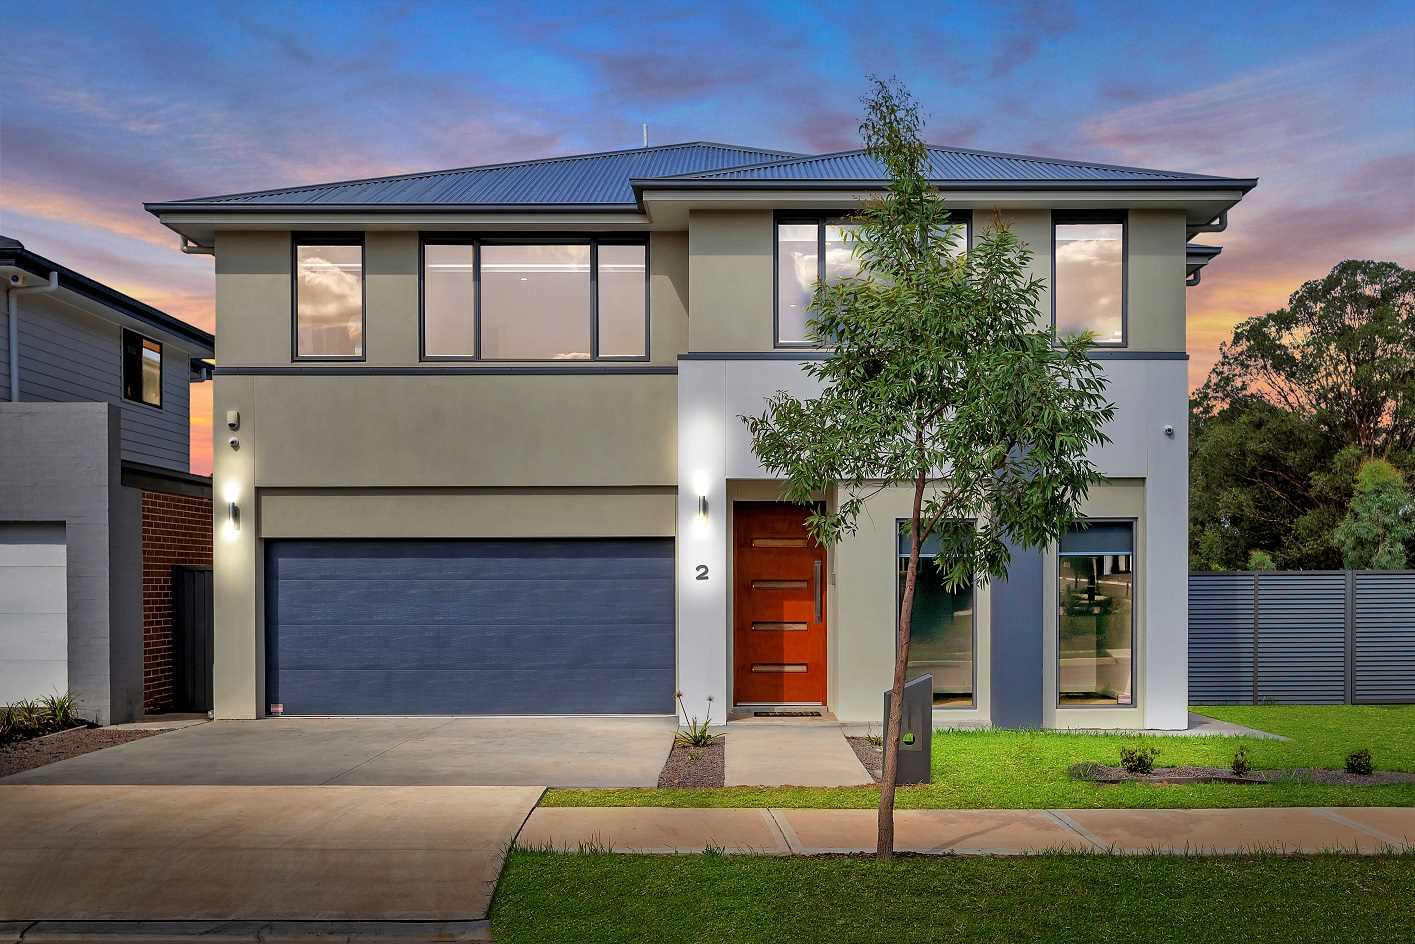 Sleek, Chic, Contemporary - Must Be Sold!